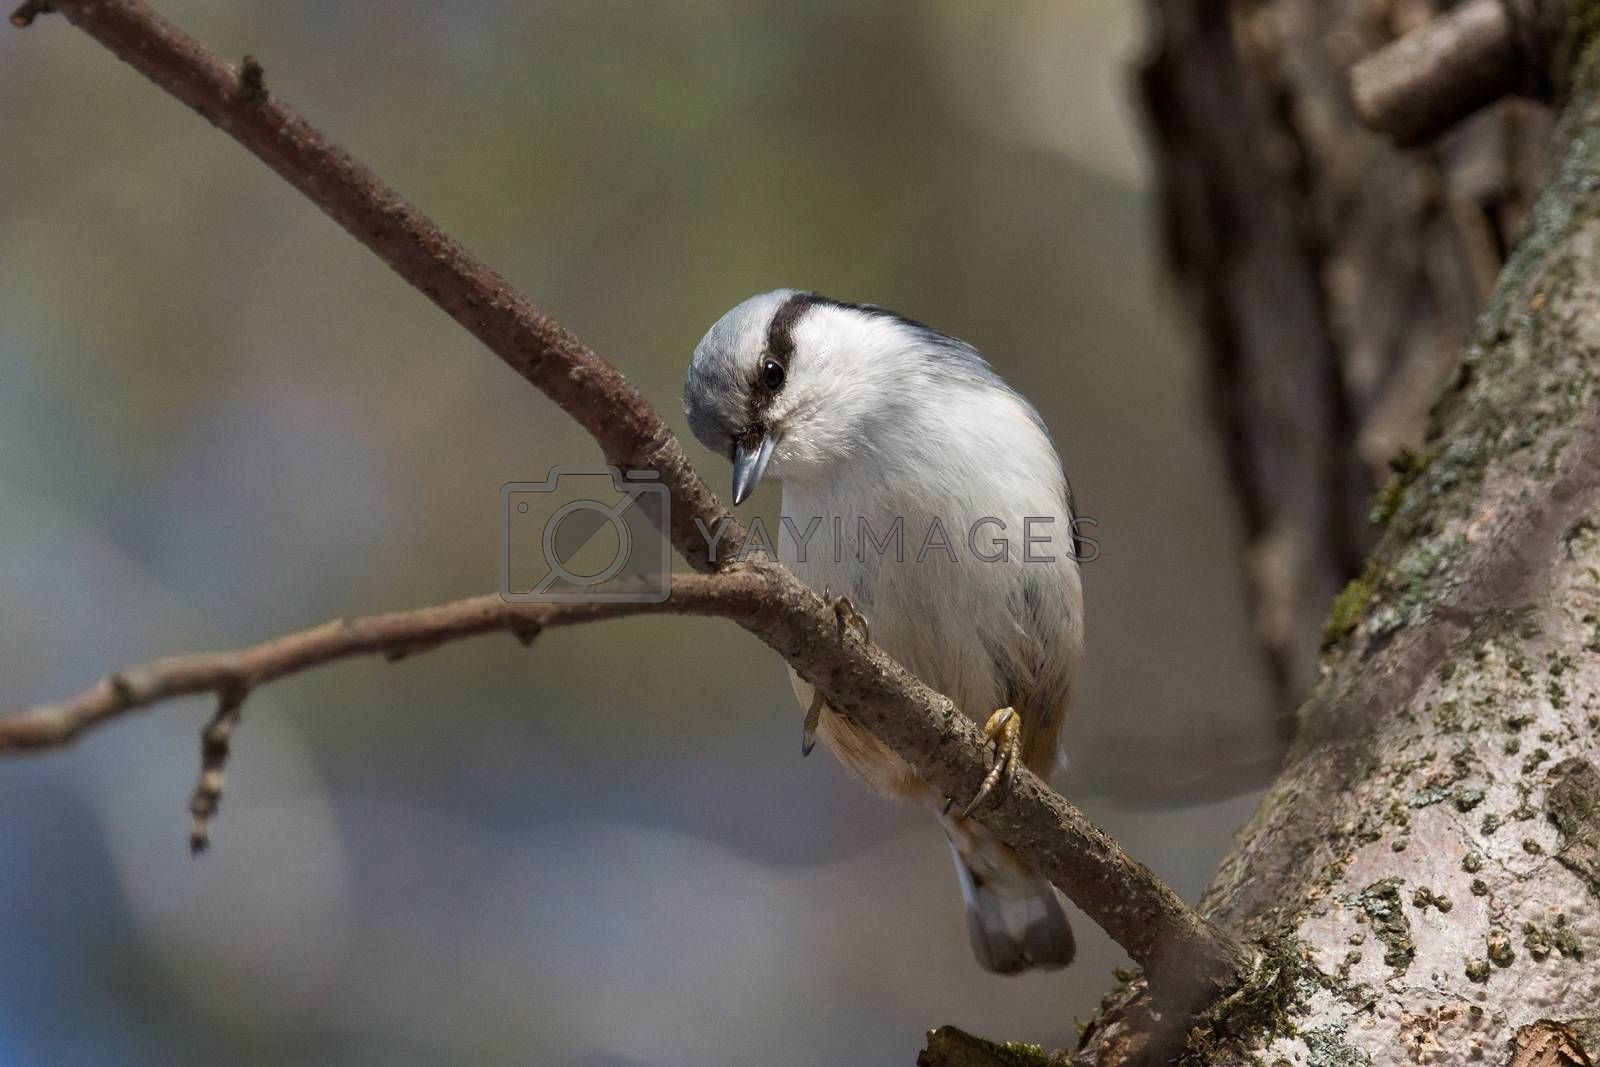 Royalty free image of  gray nuthatch on tree by AlexBush